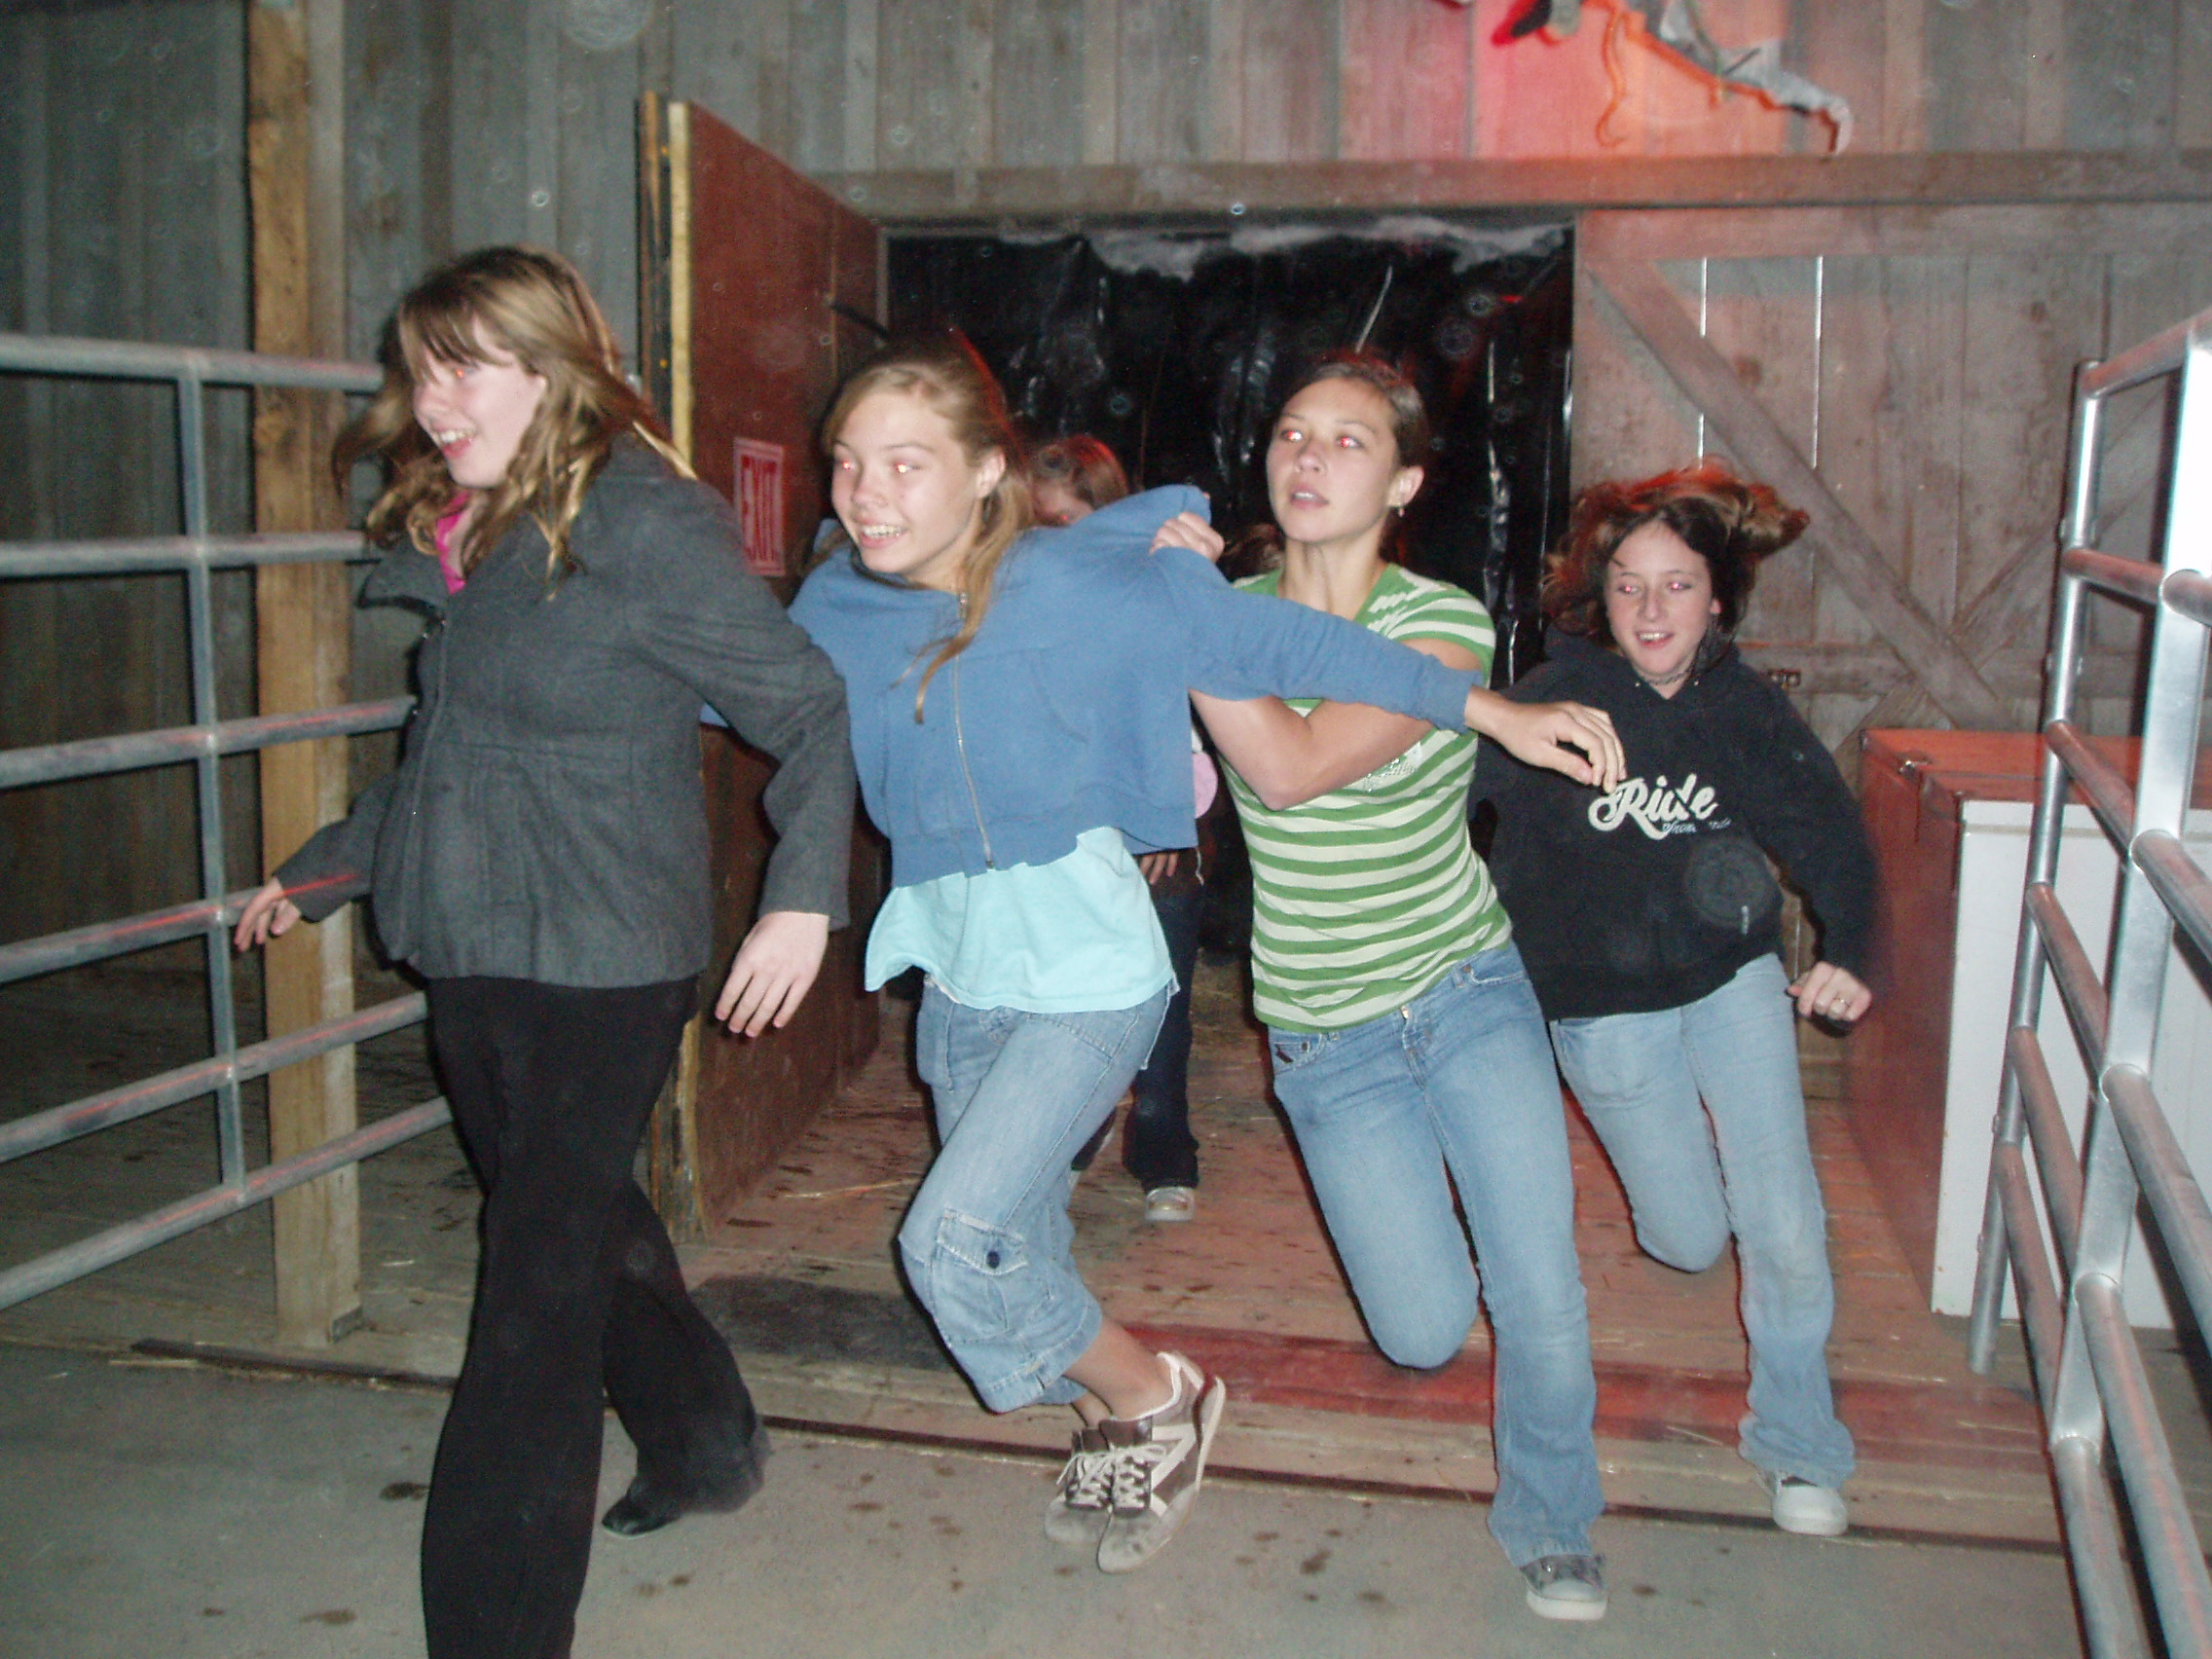 Group of Girls Run through Haunted House